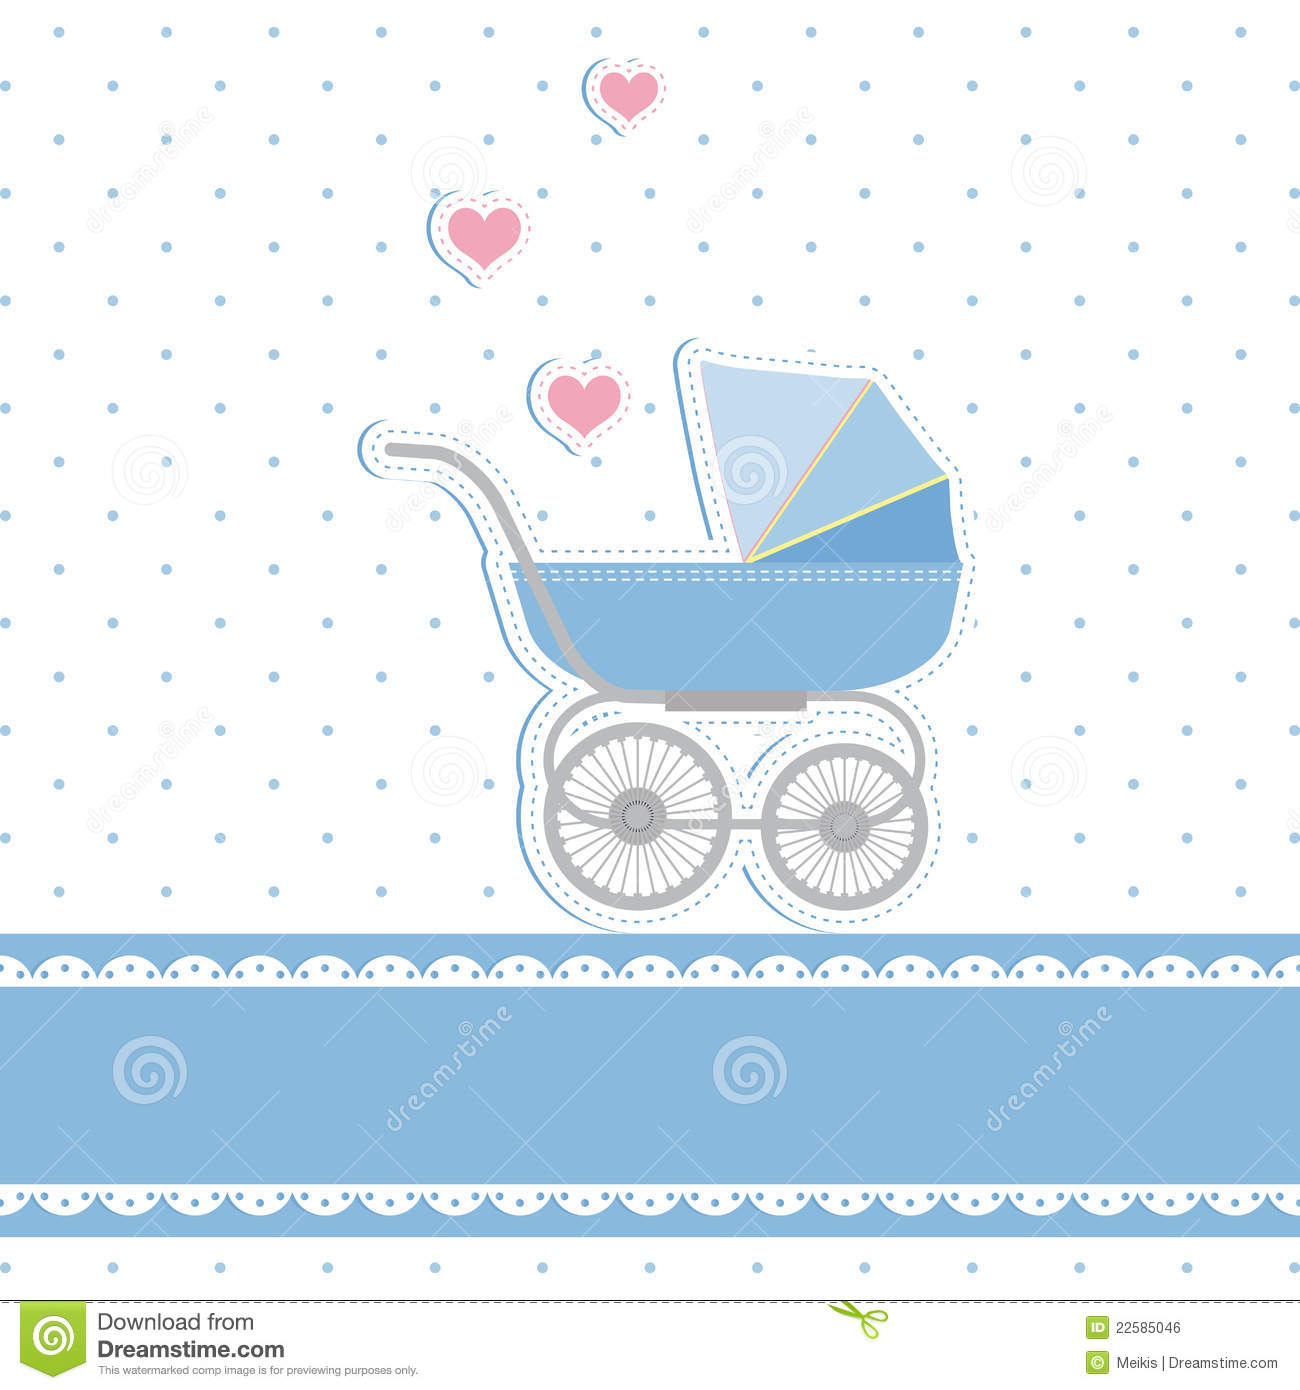 New Baby Boy Shower Invitation Card  Baby Shower Invitation Backgrounds Free